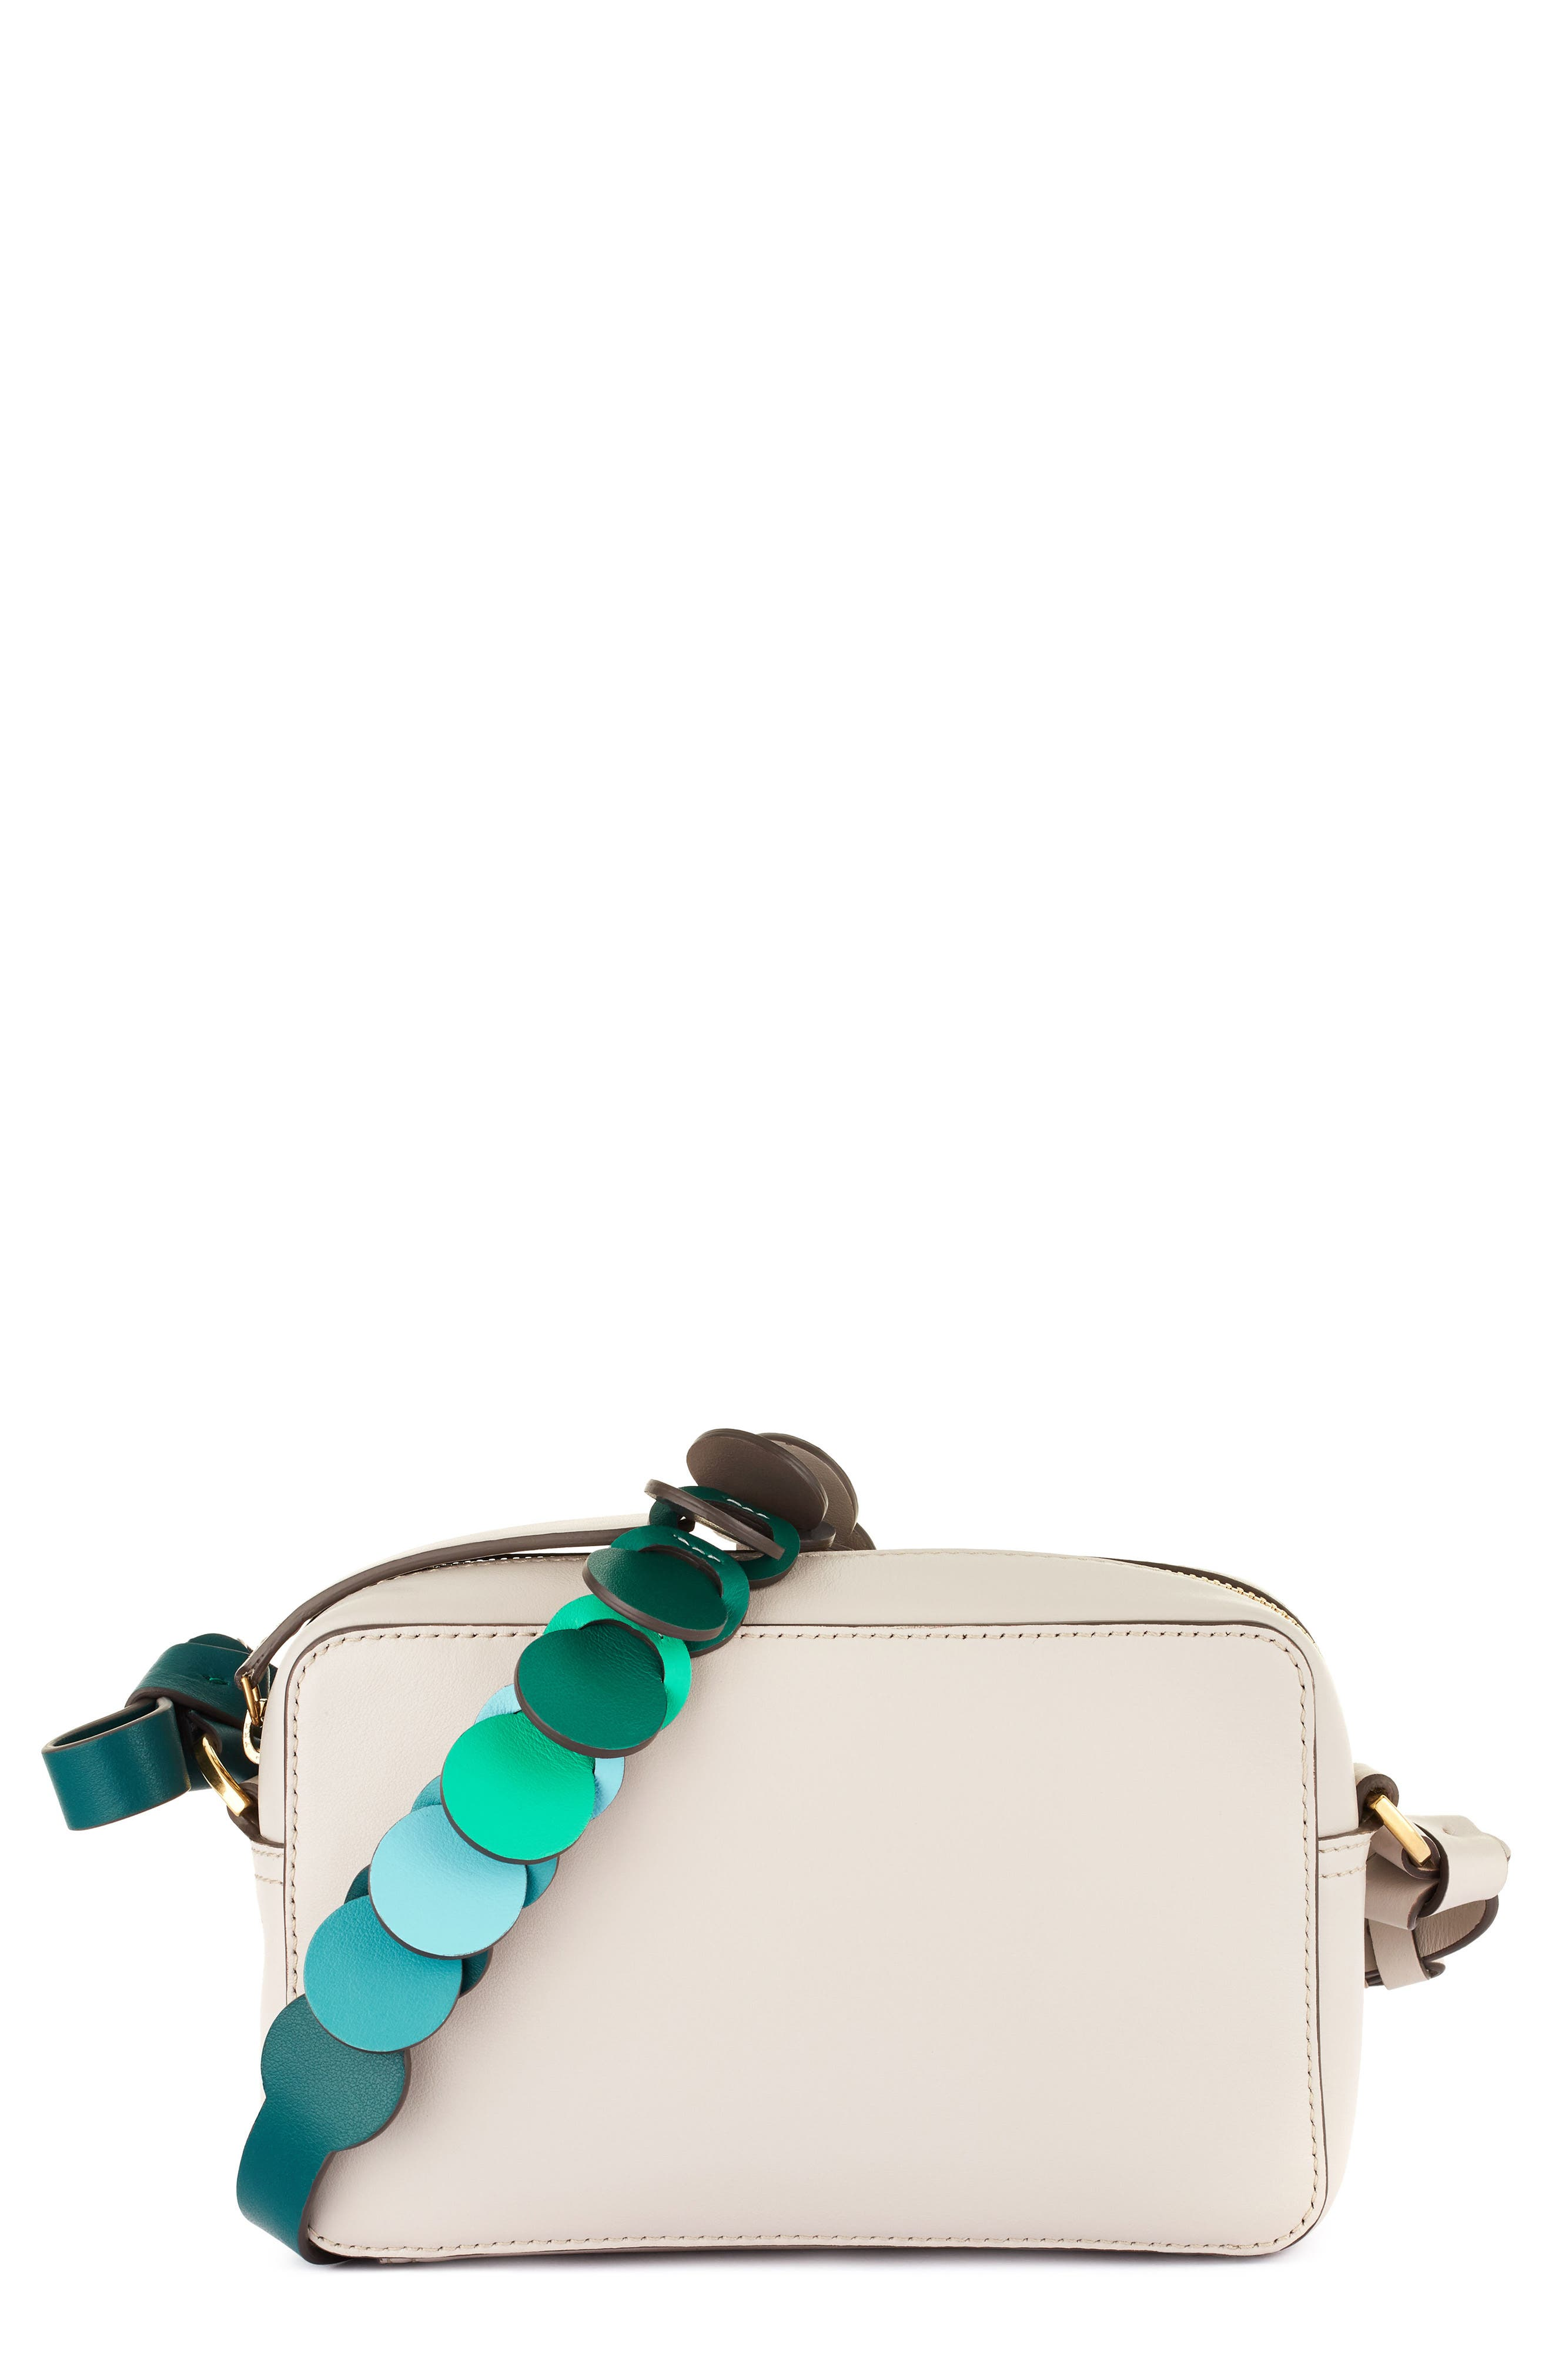 Main Image - Anya Hindmarch Camera Leather Crossbody With Link Strap